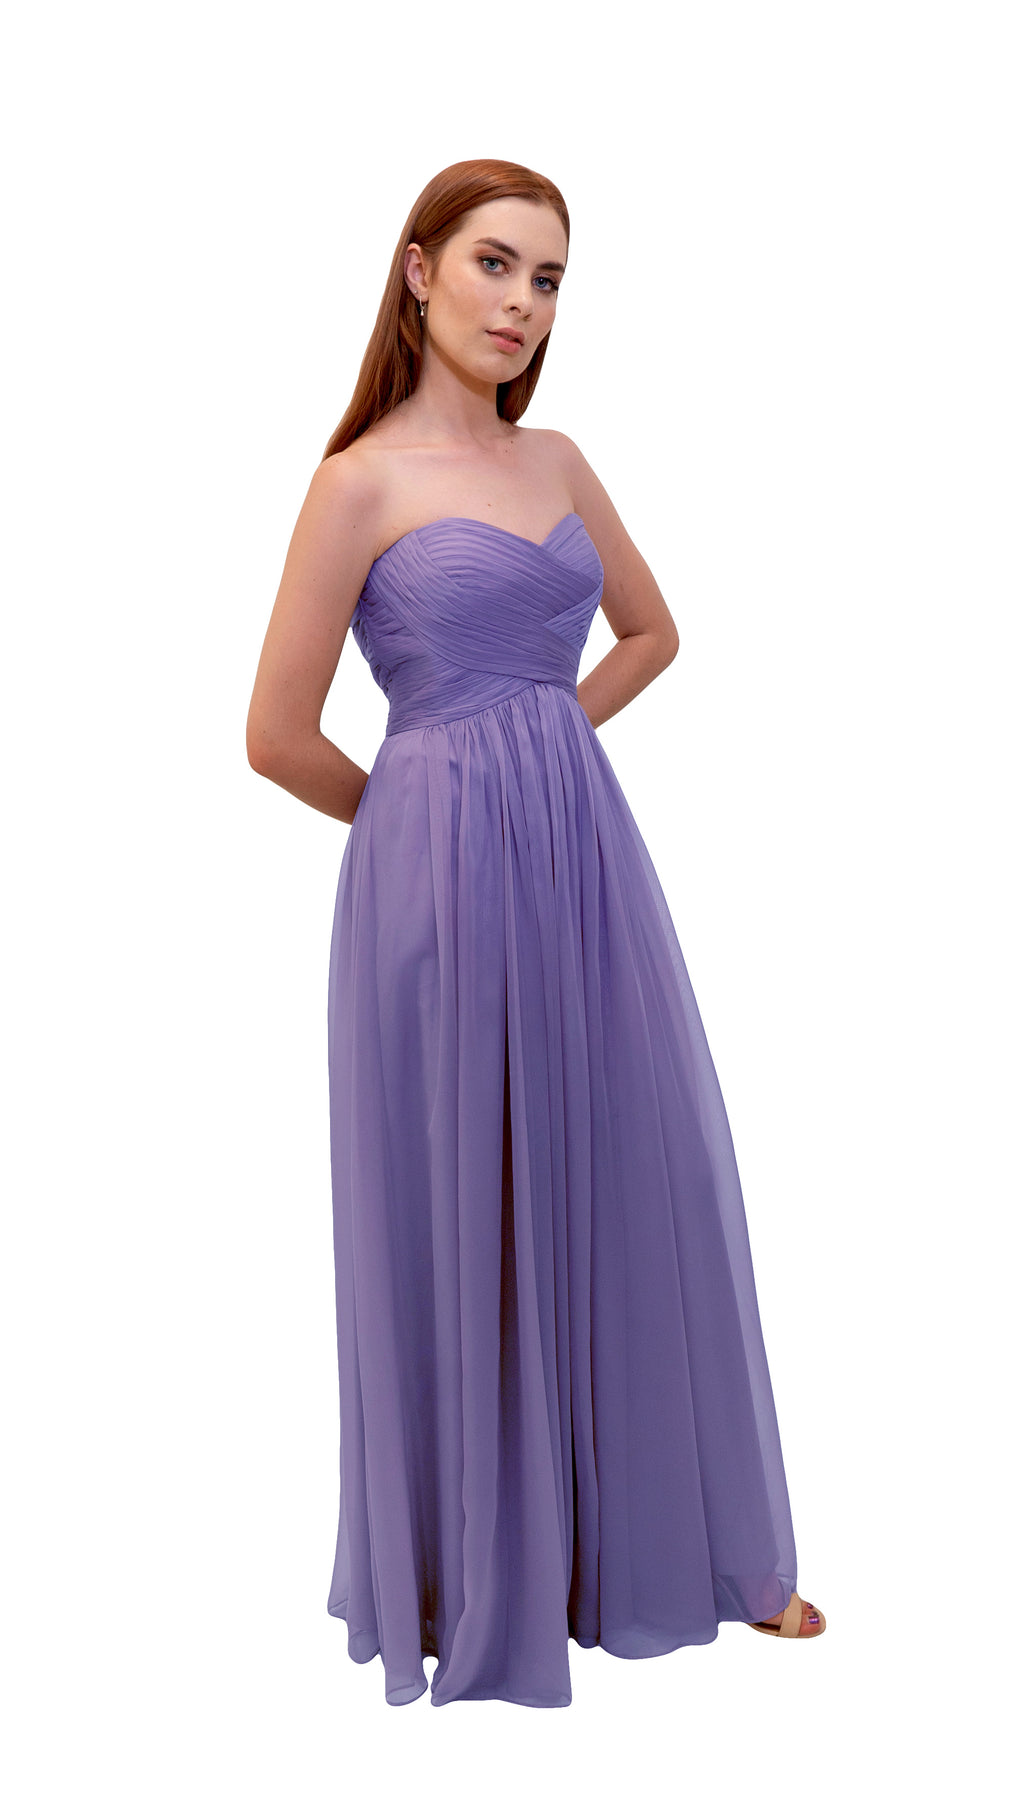 Bariano Gathered Maxi dress Lavender side